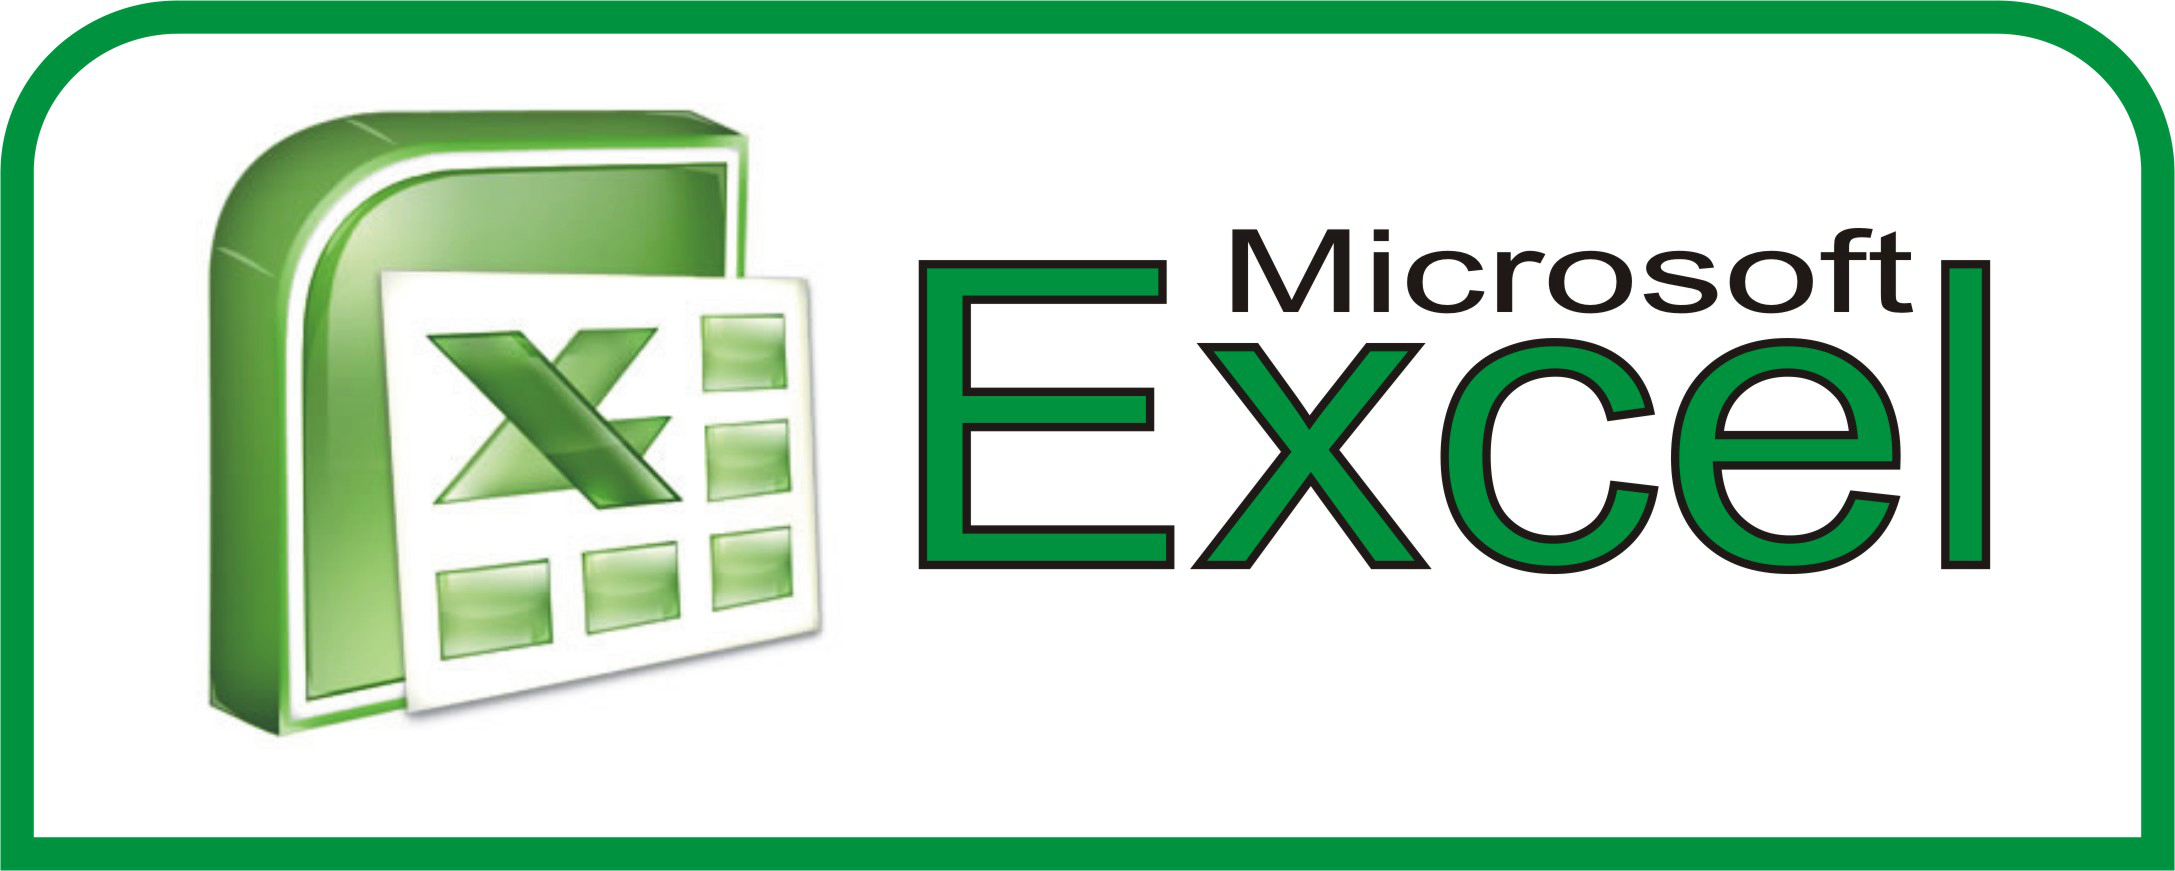 Ediblewildsus  Pleasant  Excel Shortcuts You Probably Didnt Know About  Techdissected With Glamorous To Do List Excel Besides Check Mark On Excel Furthermore Vba Excel  With Alluring Word Wrap Excel Also Excel Function If In Addition Engineering With Excel Th Edition Pdf And Workbook Excel Definition As Well As How To Insert Excel Into Word Additionally Date Picker Excel From Techdissectedcom With Ediblewildsus  Glamorous  Excel Shortcuts You Probably Didnt Know About  Techdissected With Alluring To Do List Excel Besides Check Mark On Excel Furthermore Vba Excel  And Pleasant Word Wrap Excel Also Excel Function If In Addition Engineering With Excel Th Edition Pdf From Techdissectedcom